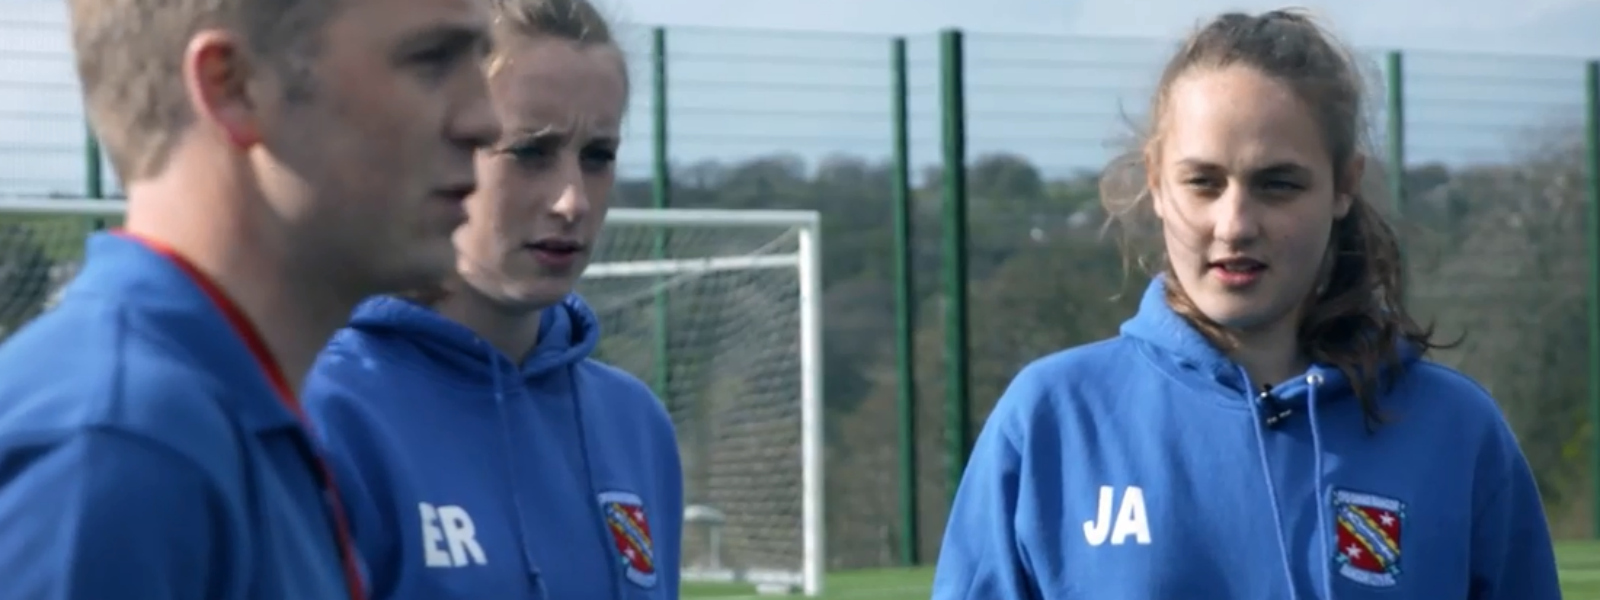 'Football is not just a man's game, it's anybody's game' Bangor City player Jade Adams explains why she loves our game